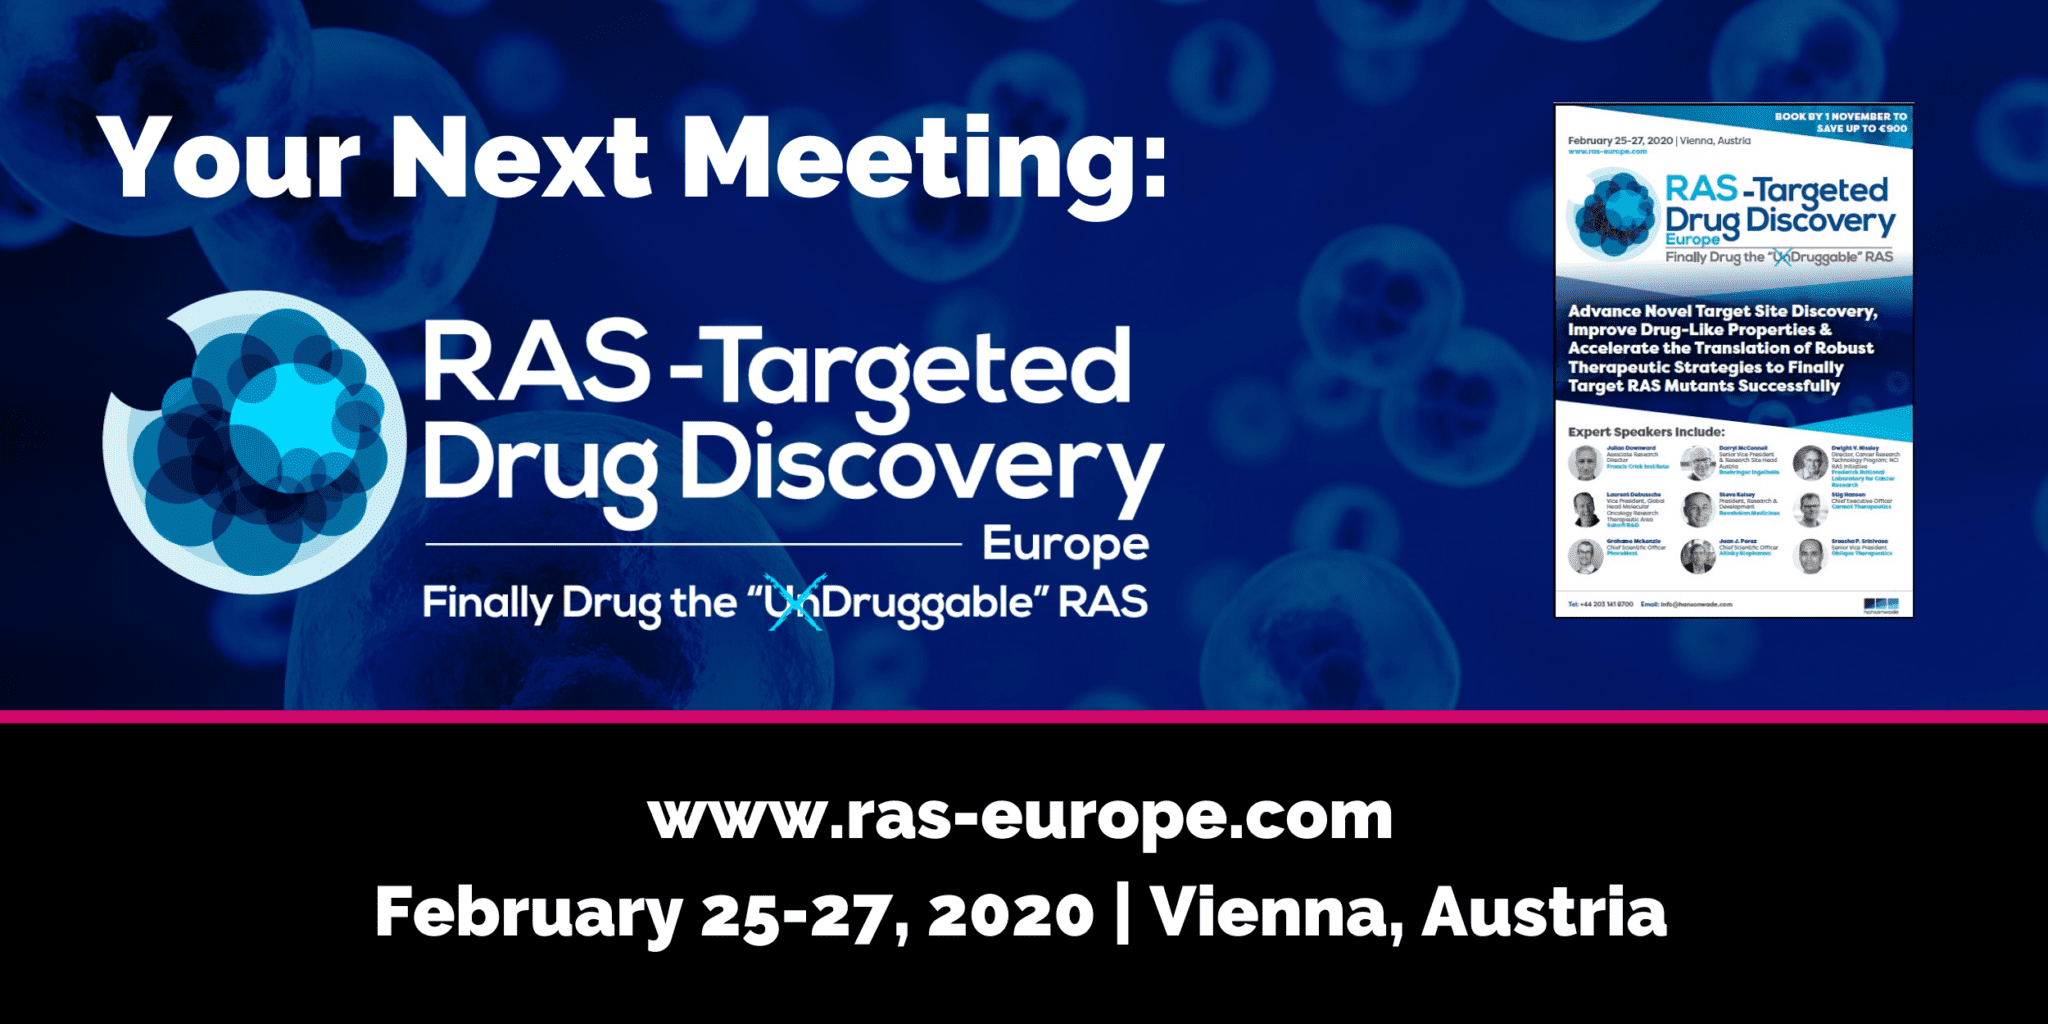 RAS- Targeted Drug Discovery Europe